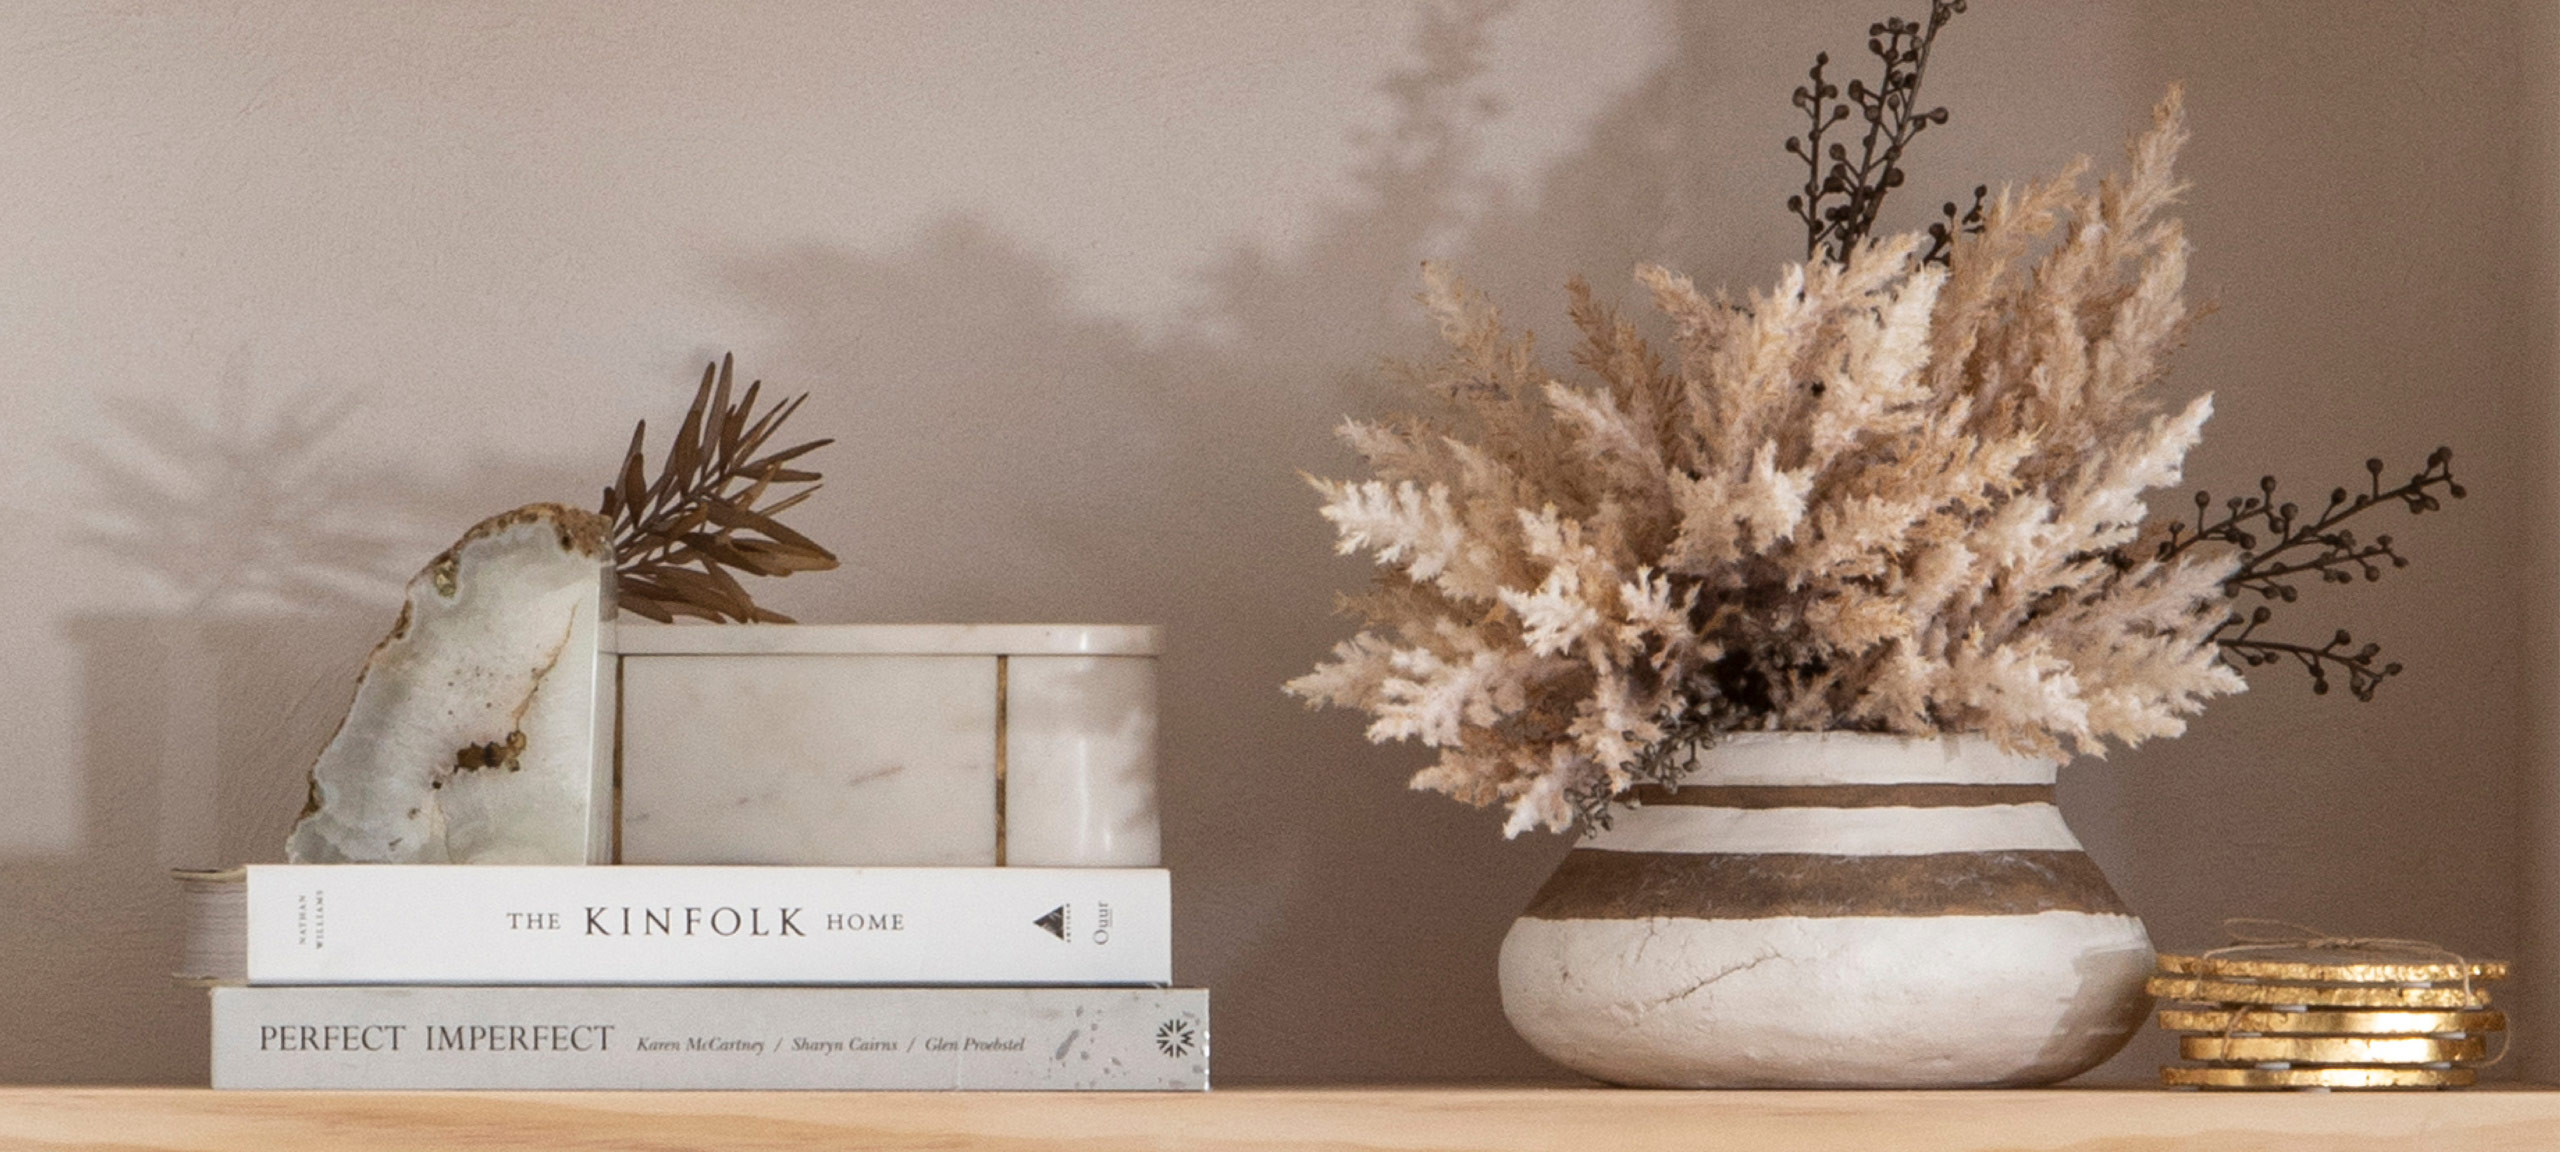 Pillow Talk Marble and Agate Styling Agate bookend